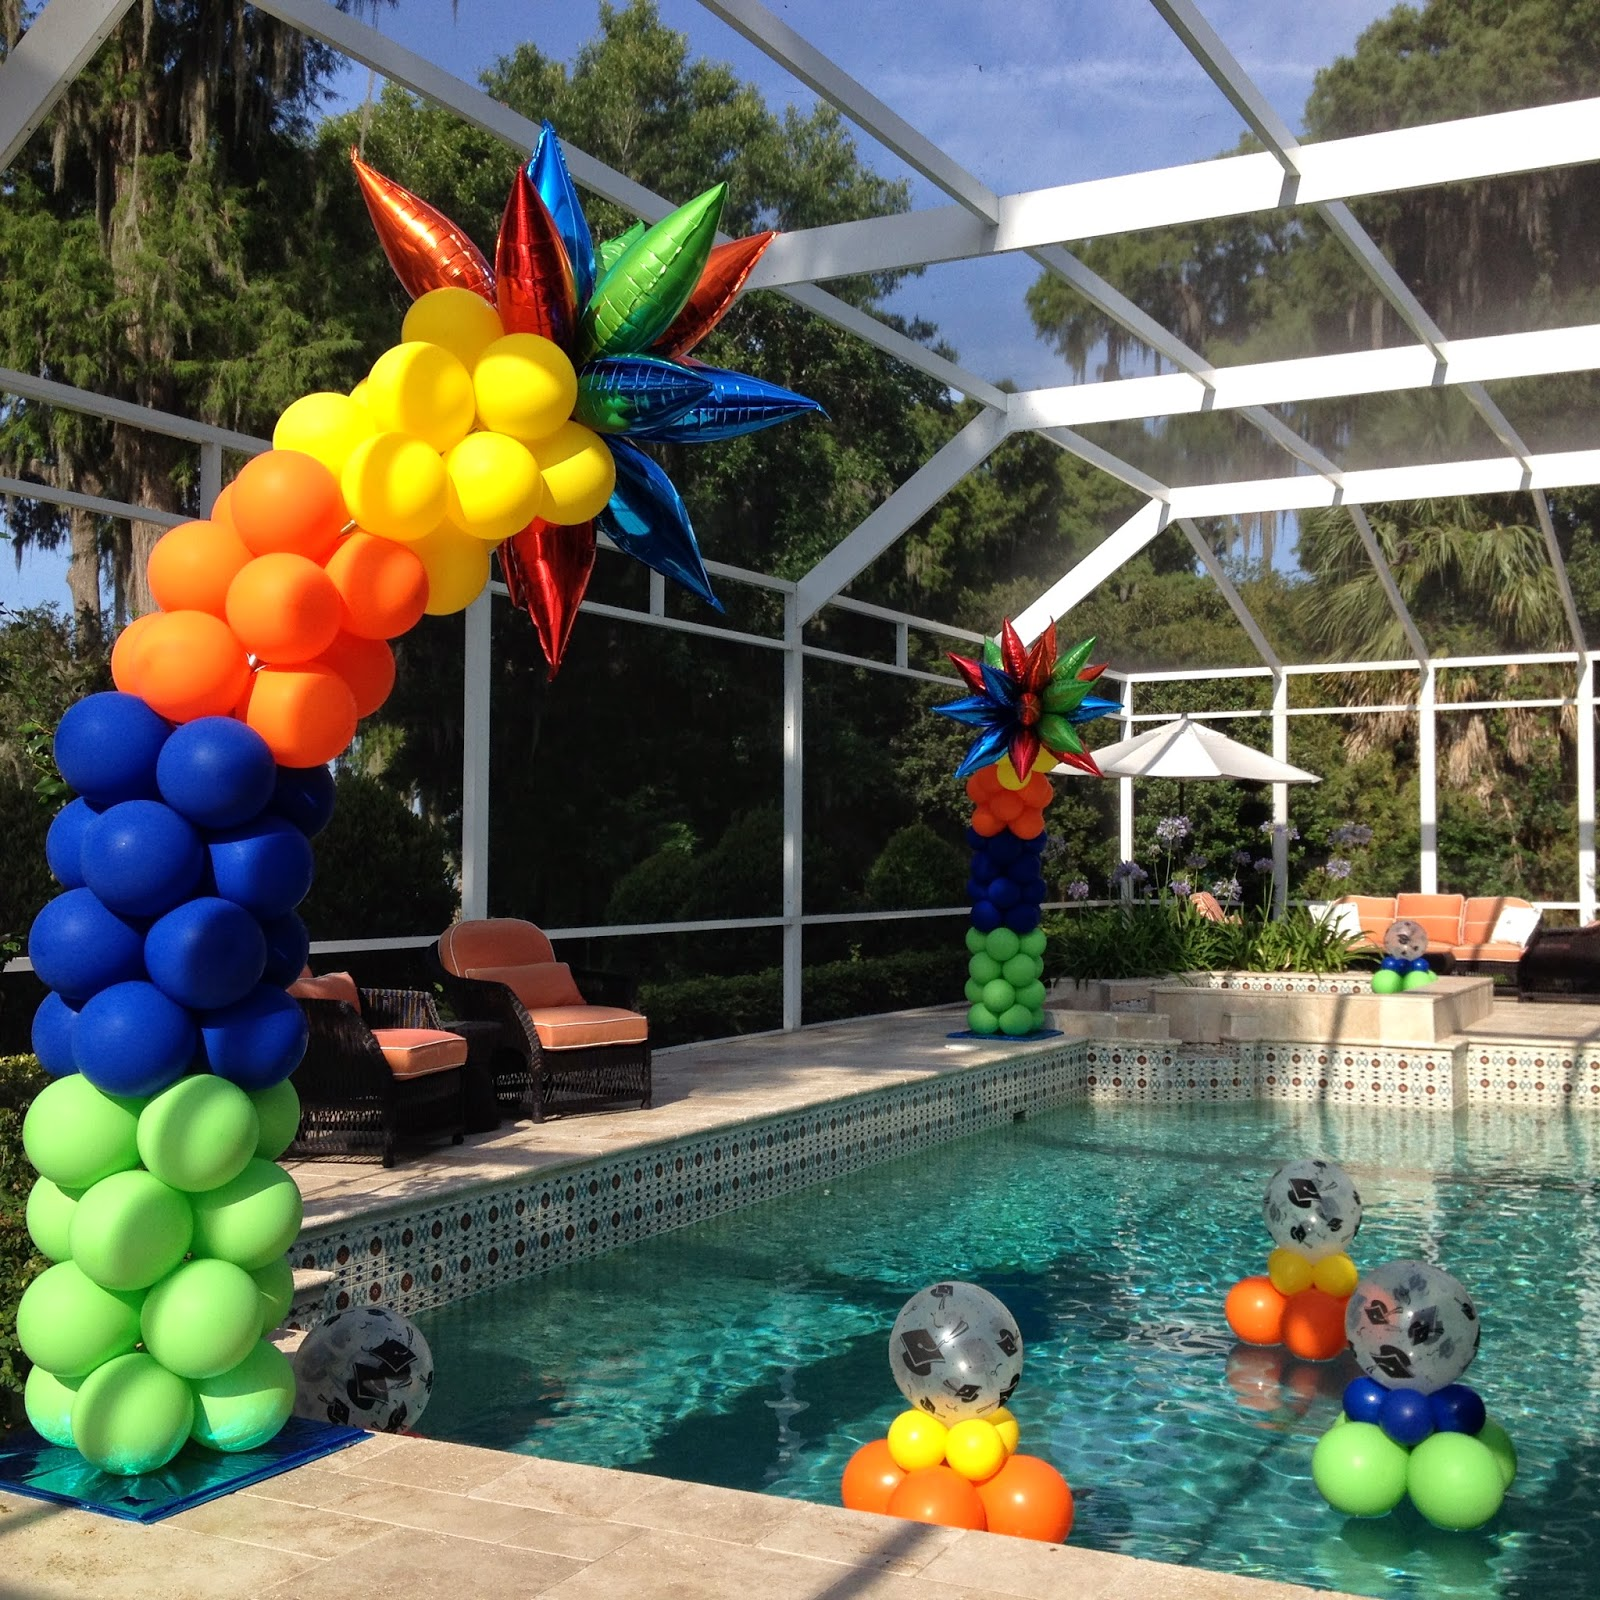 Party People Event Decorating Company: Colorful Graduation